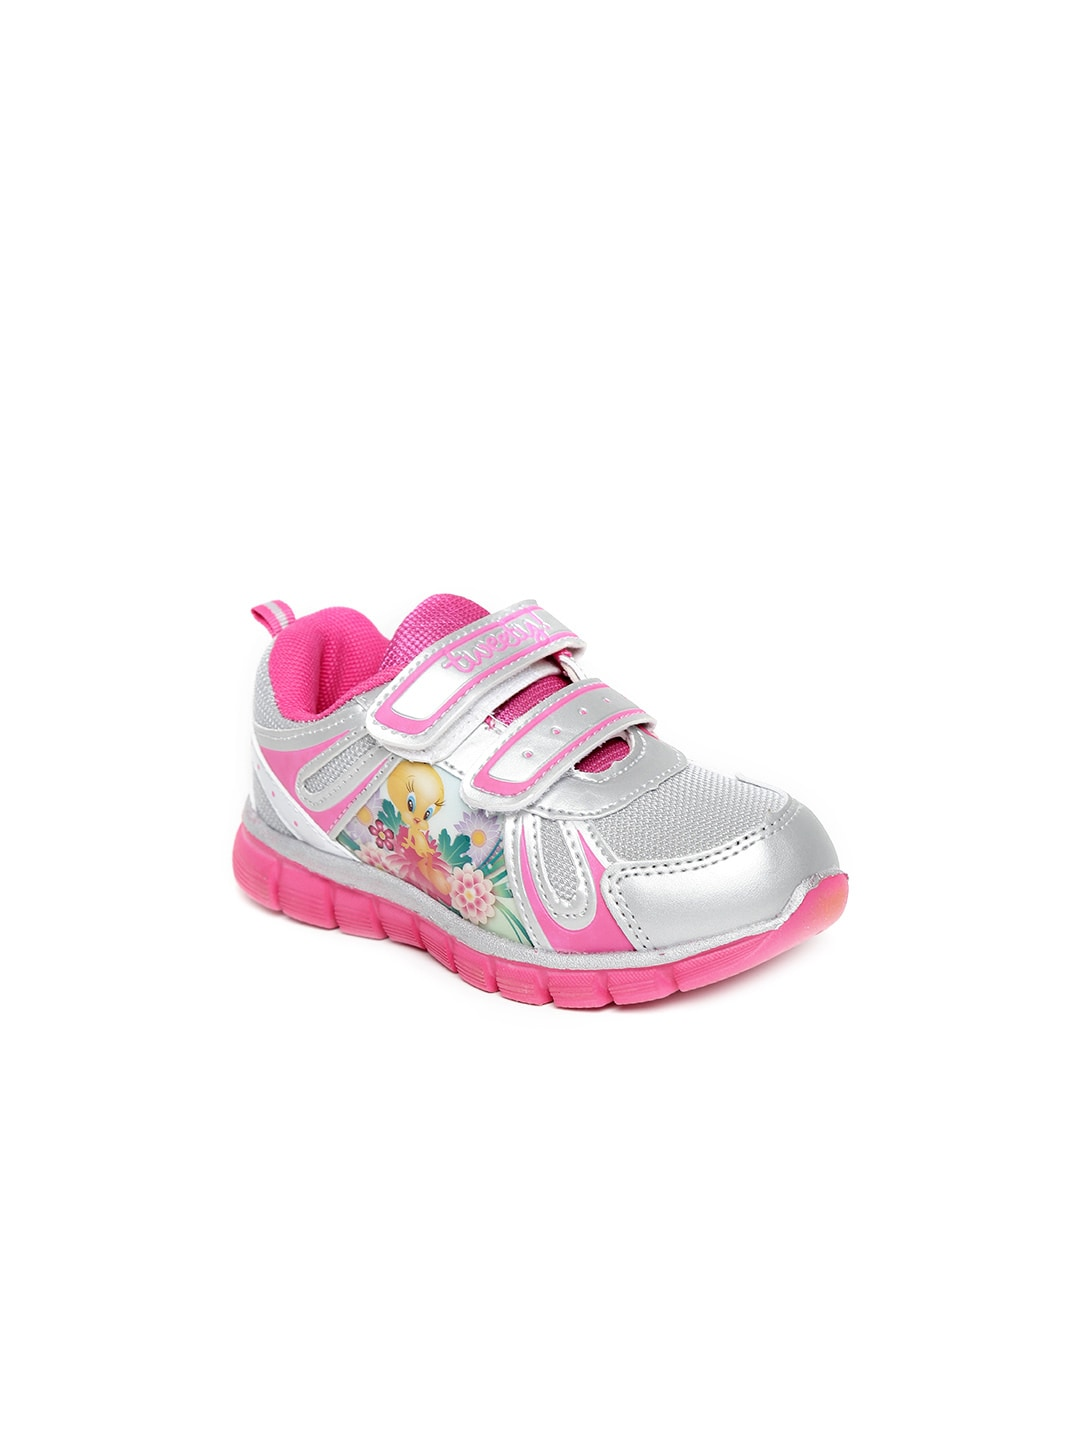 Tweety Tweety Kids Silver-Toned Casual Shoes